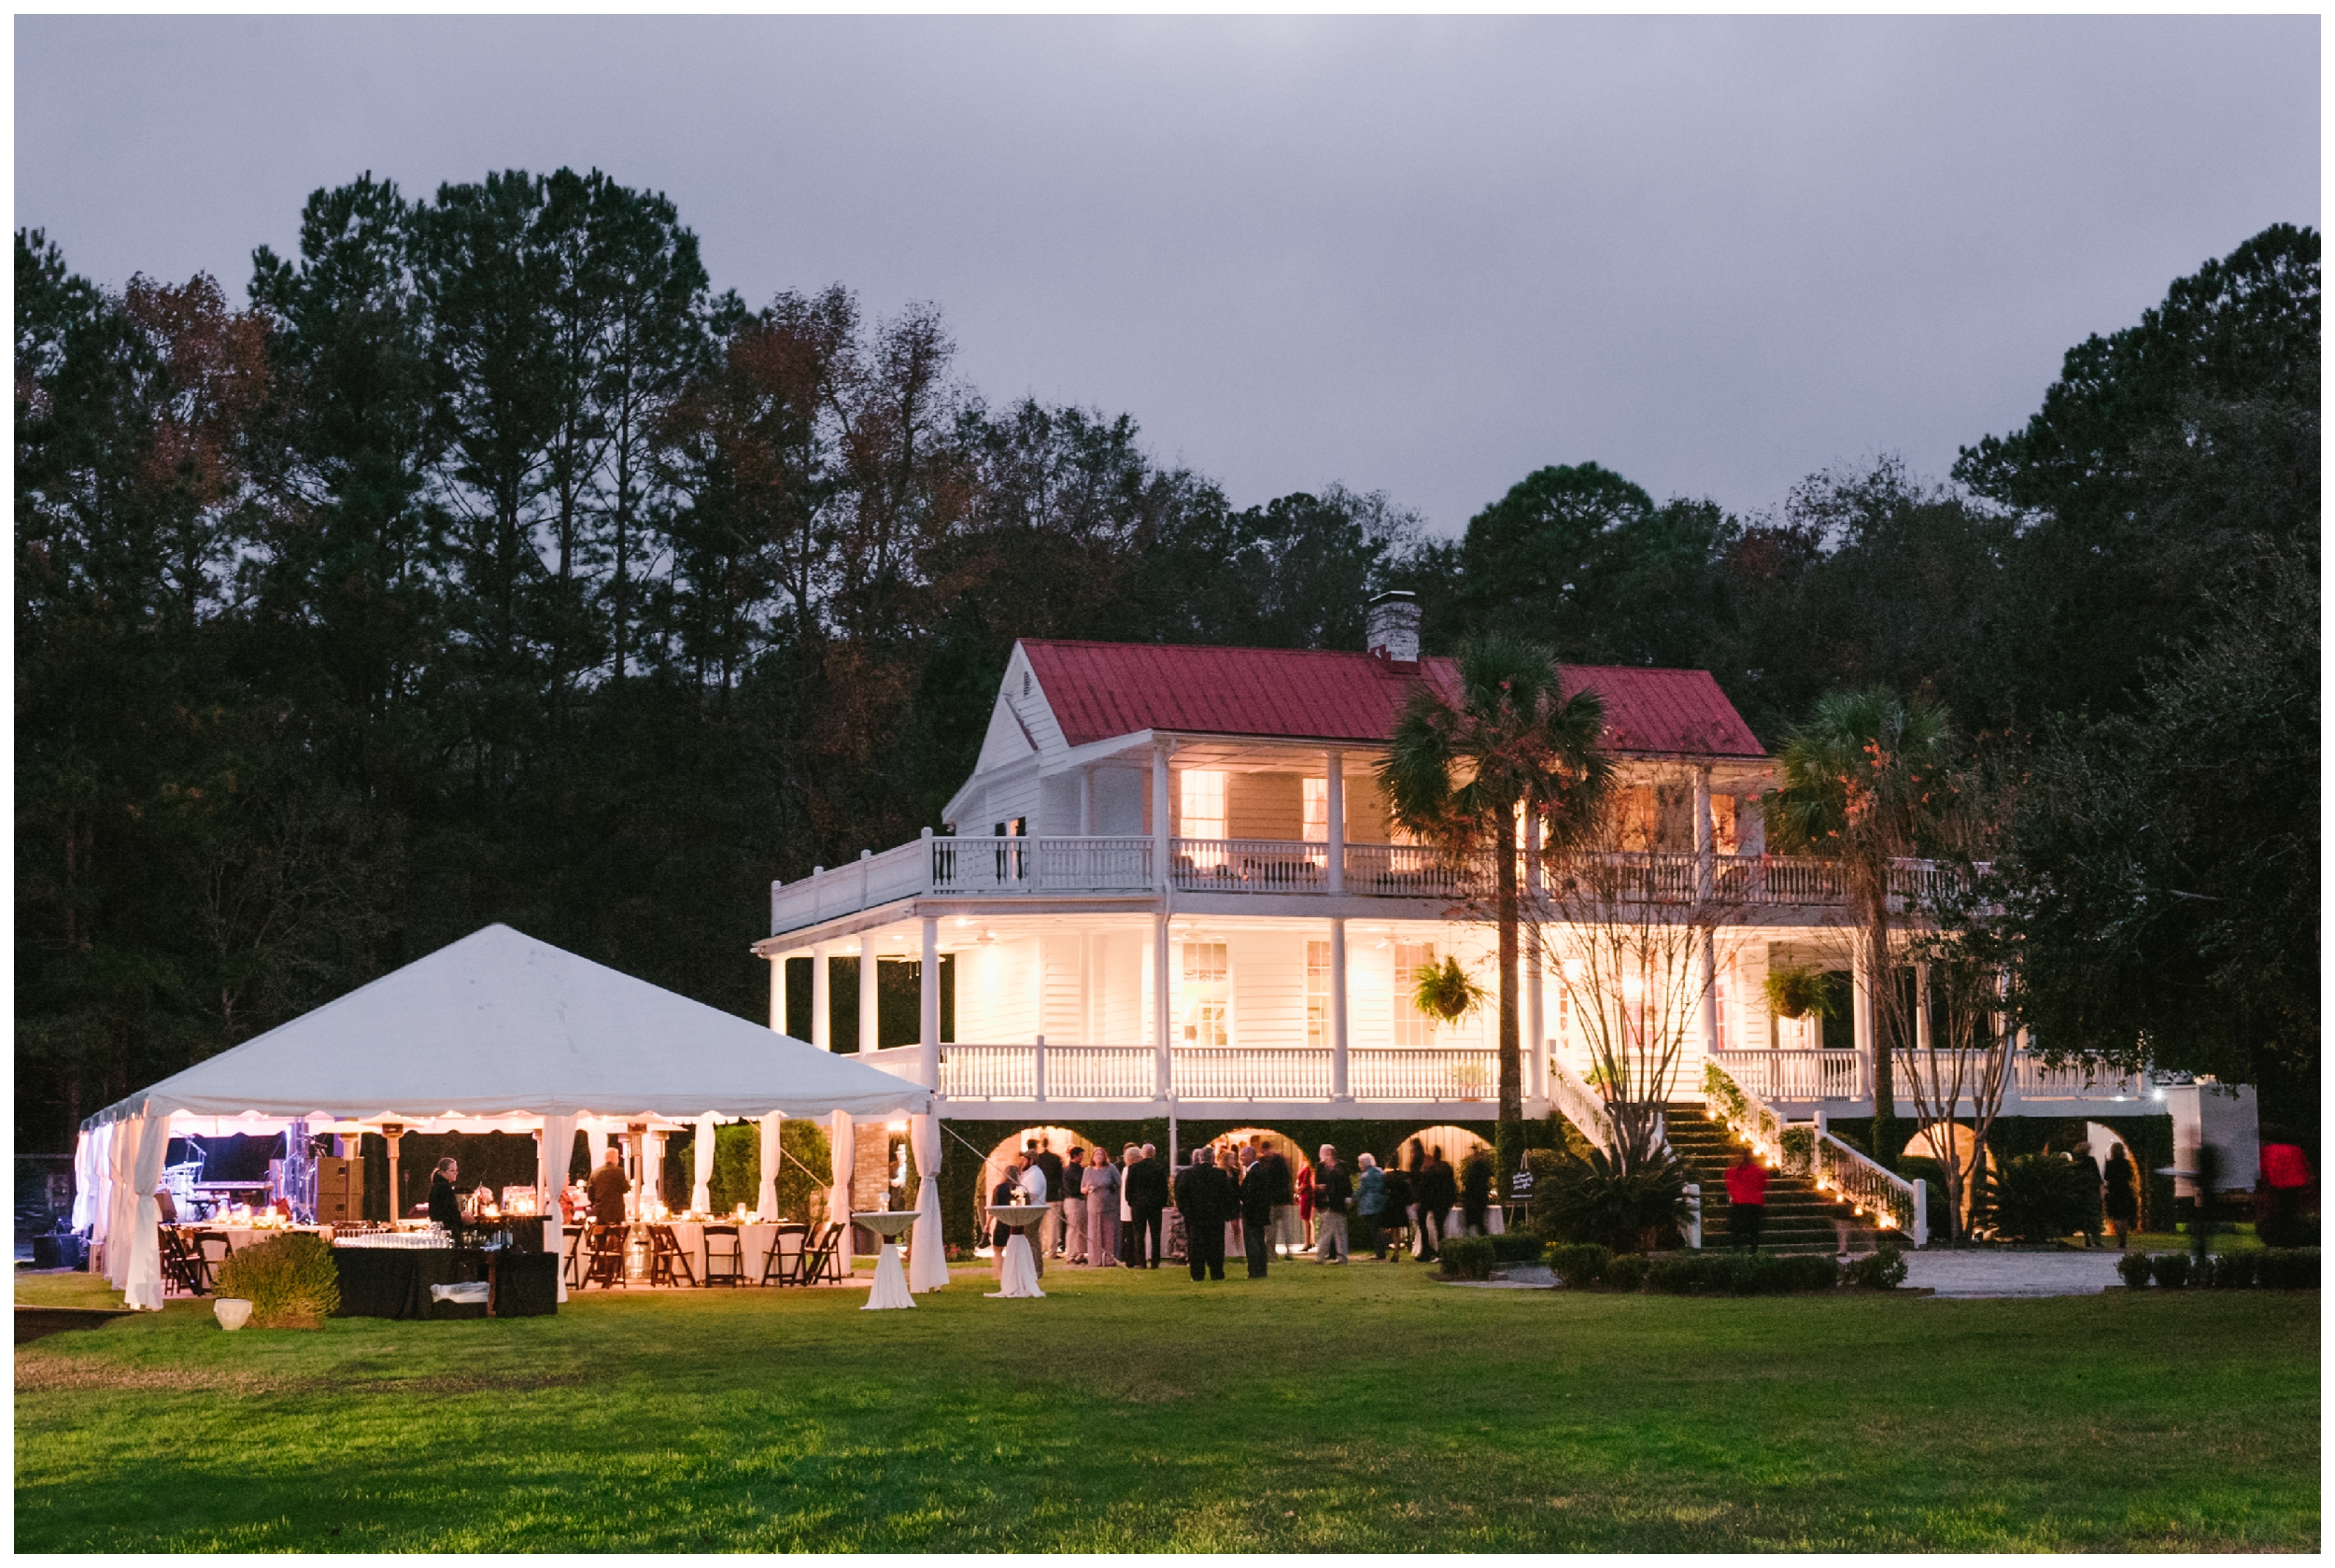 old wide awake plantation is so beautiful lit up at night!